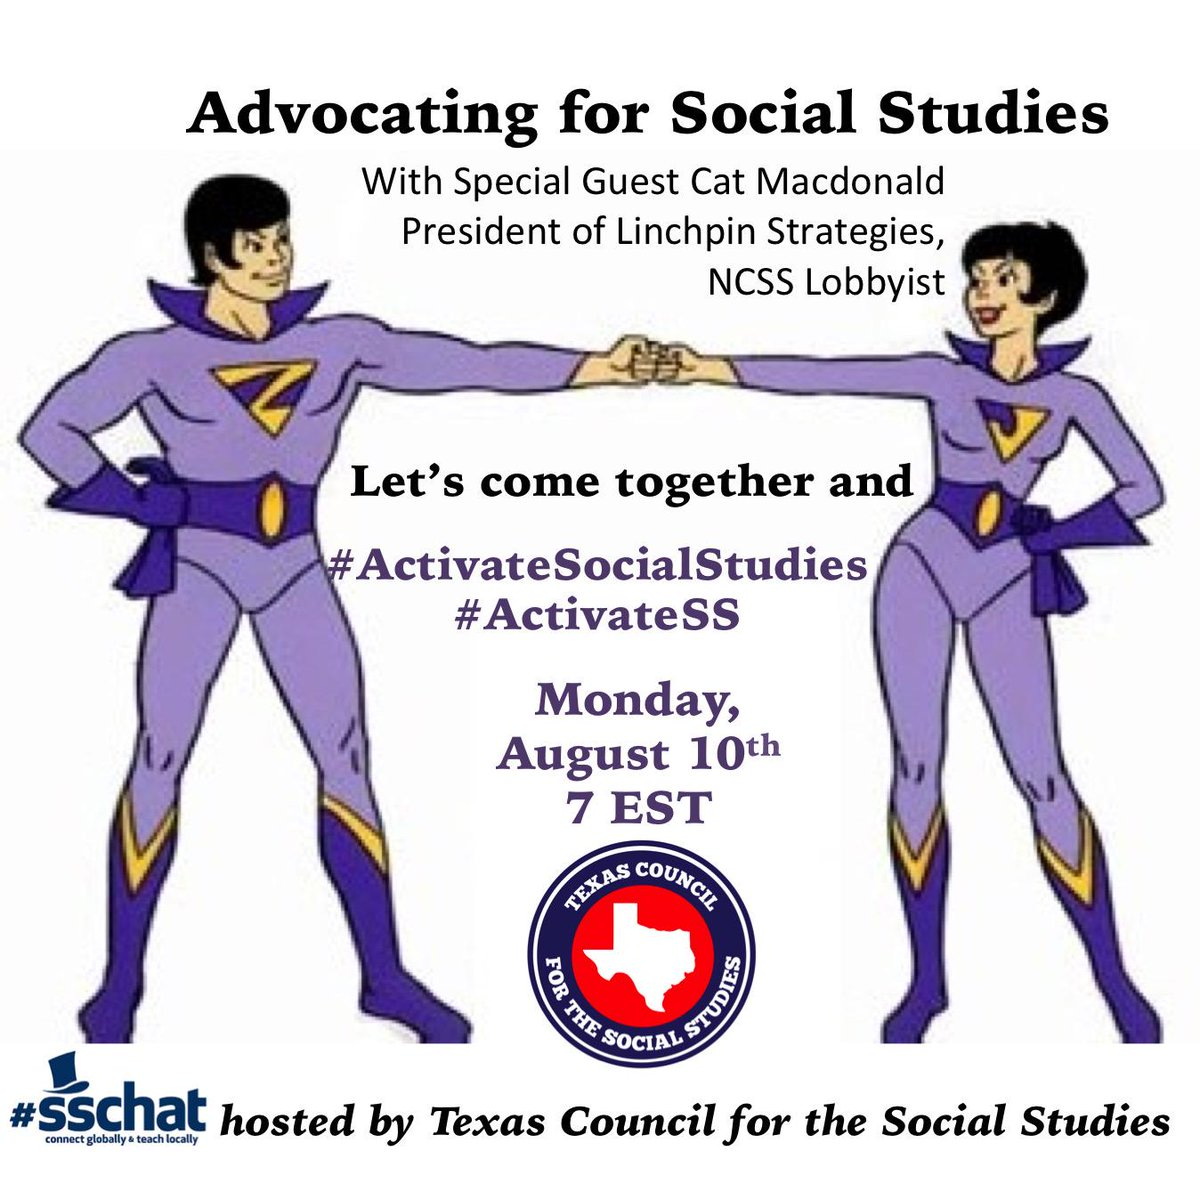 Join #sschat Tonight  7 PM EST as we discuss Advocating Social Studies with our host @TxSocialStudies http://t.co/7iJPq8JHNo